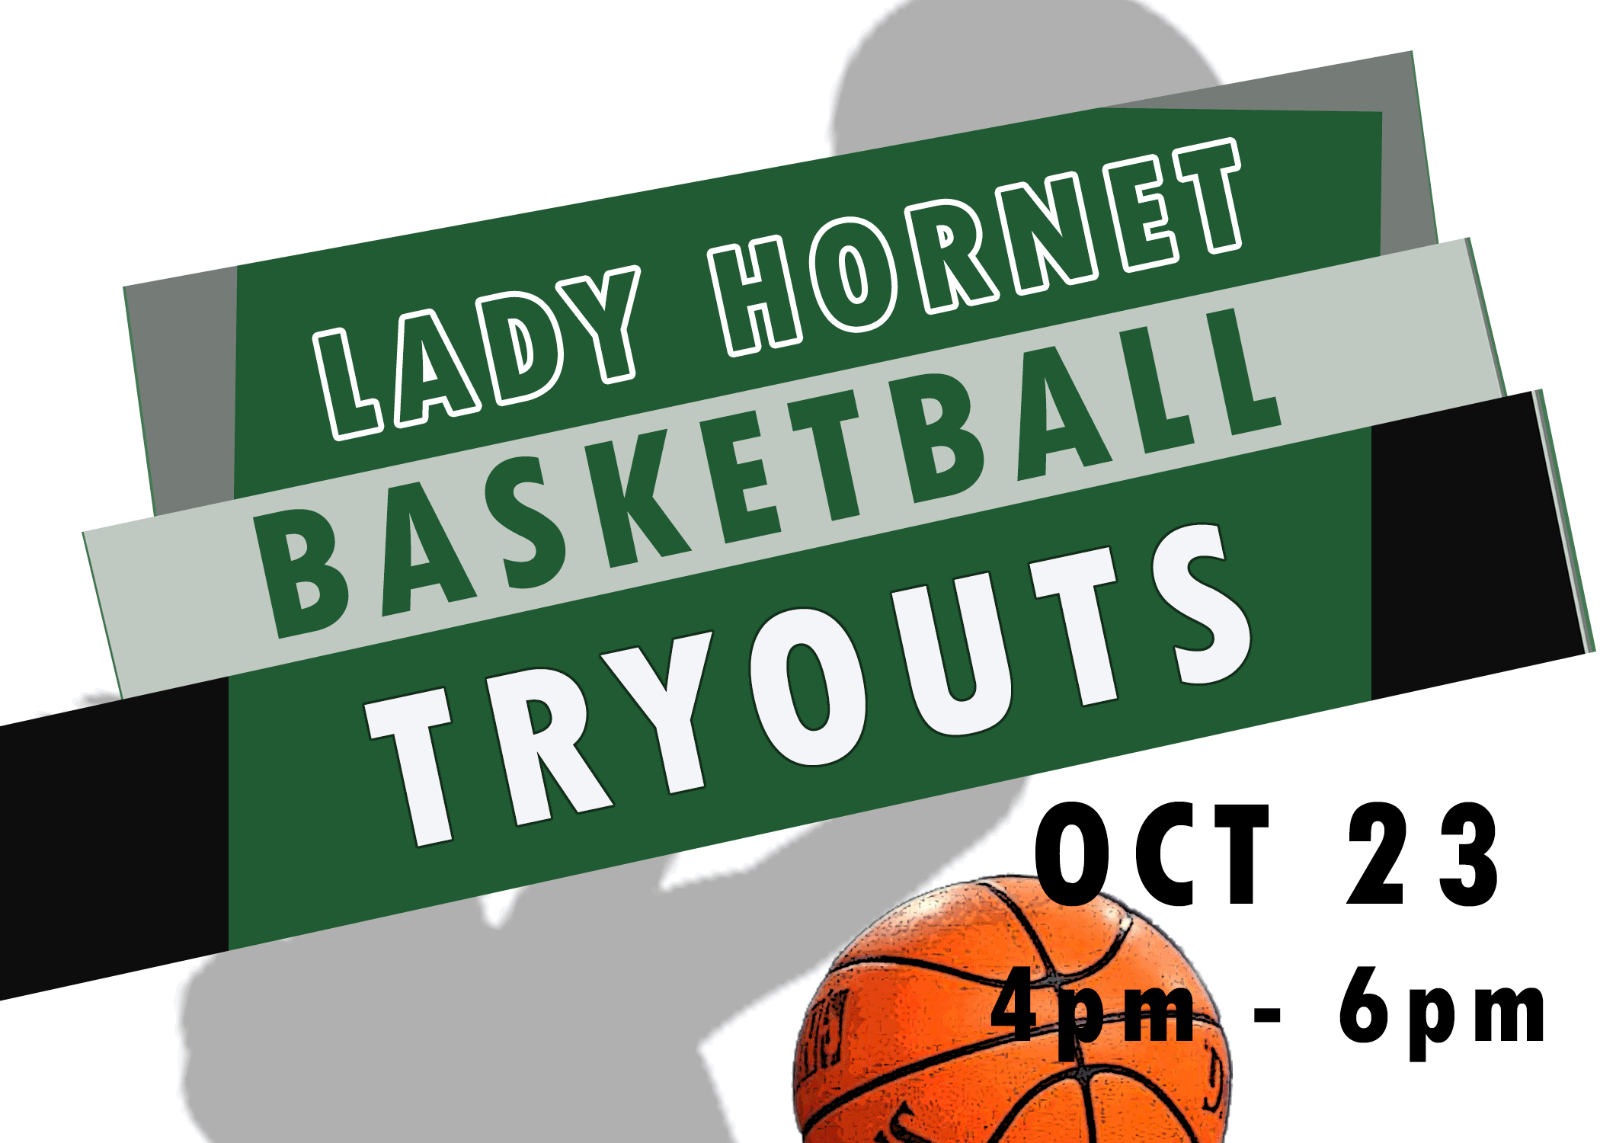 Lady Hornet Basketball Tryout Information